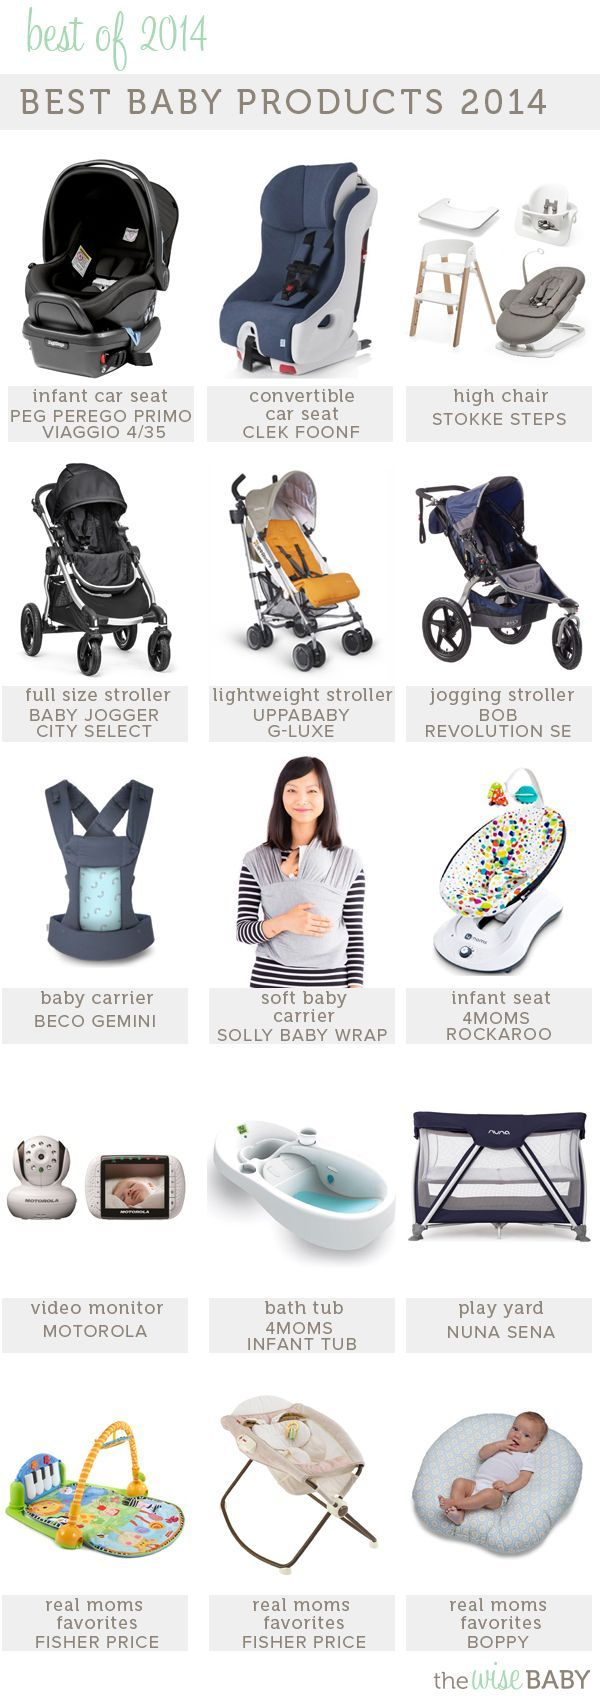 Best Baby Products 2014 | The Wise Baby | Bloglovin'